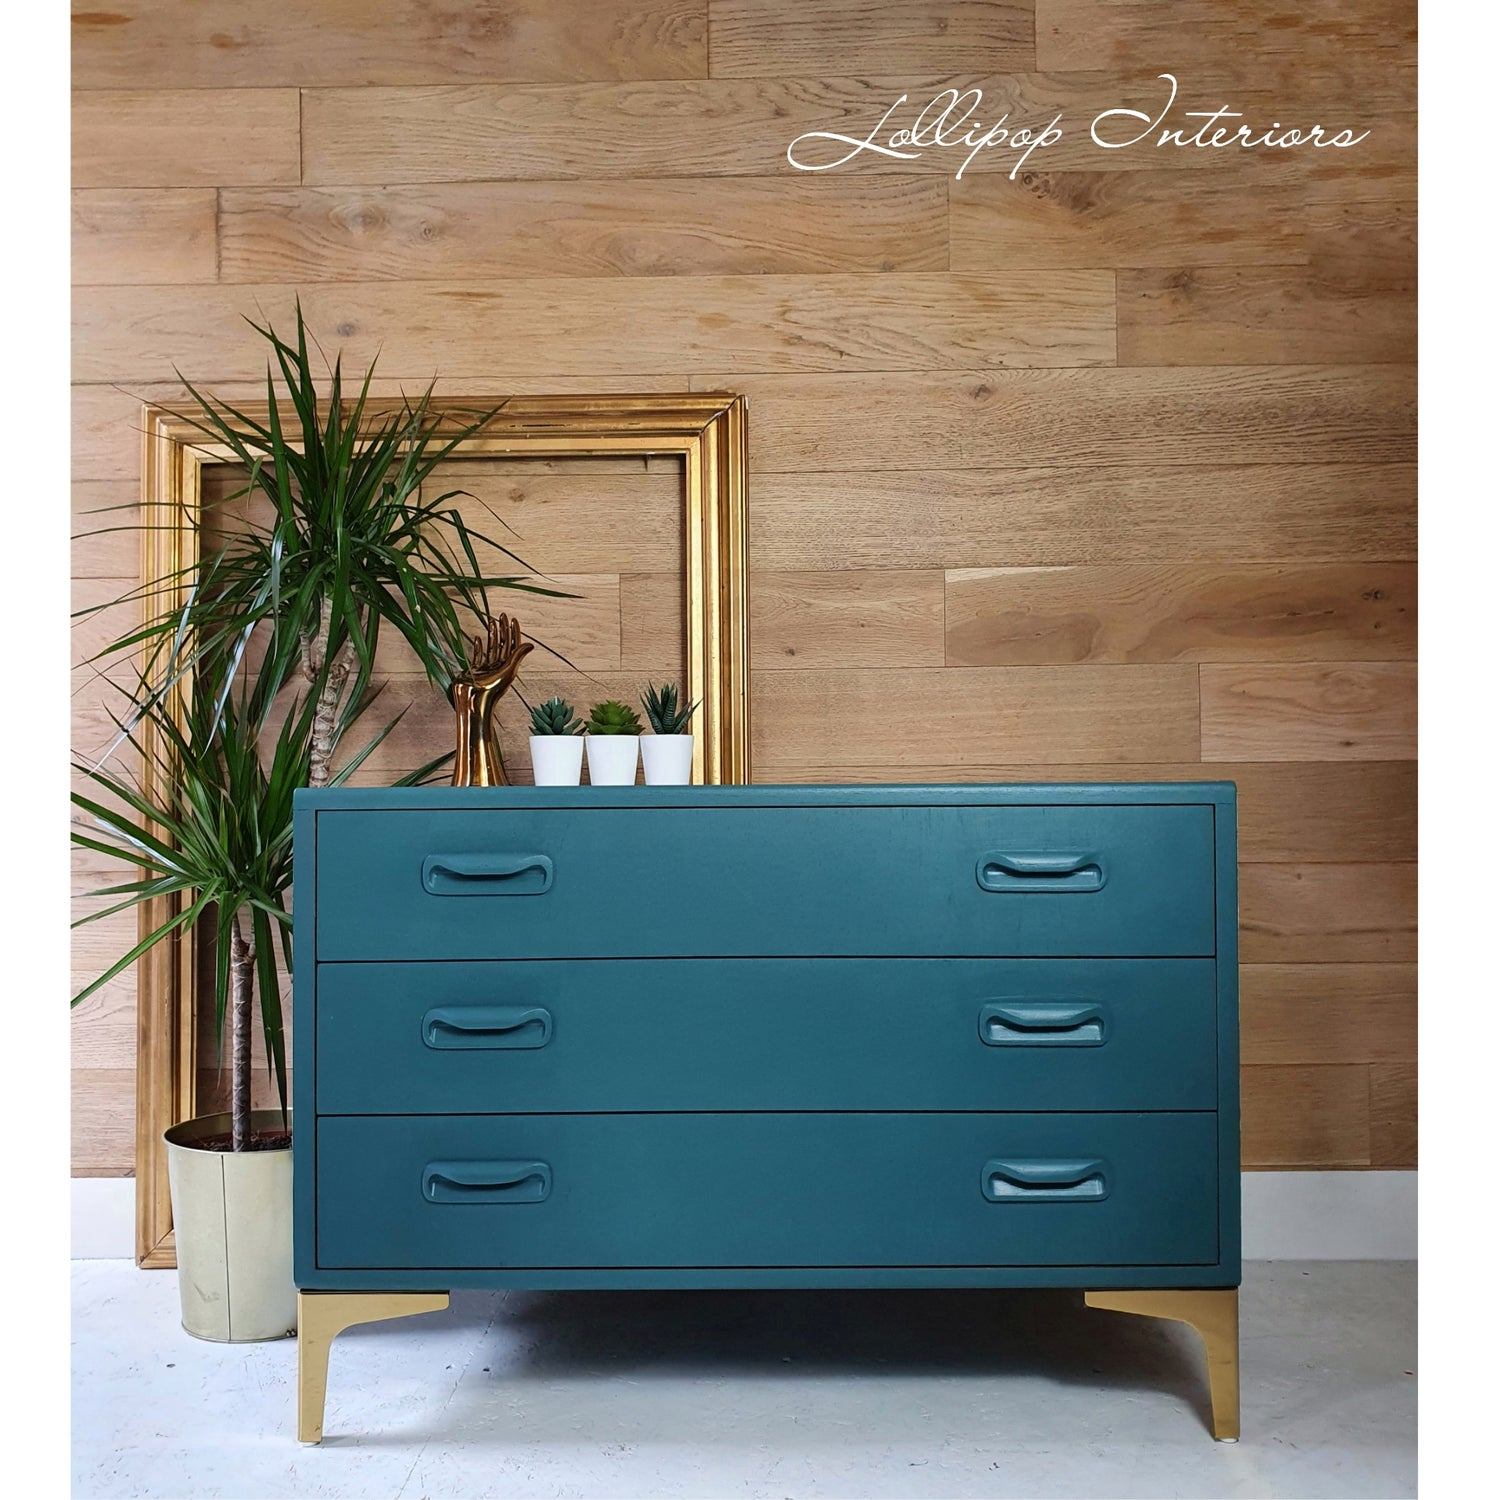 Image of G plan chest of drawers in green and gold